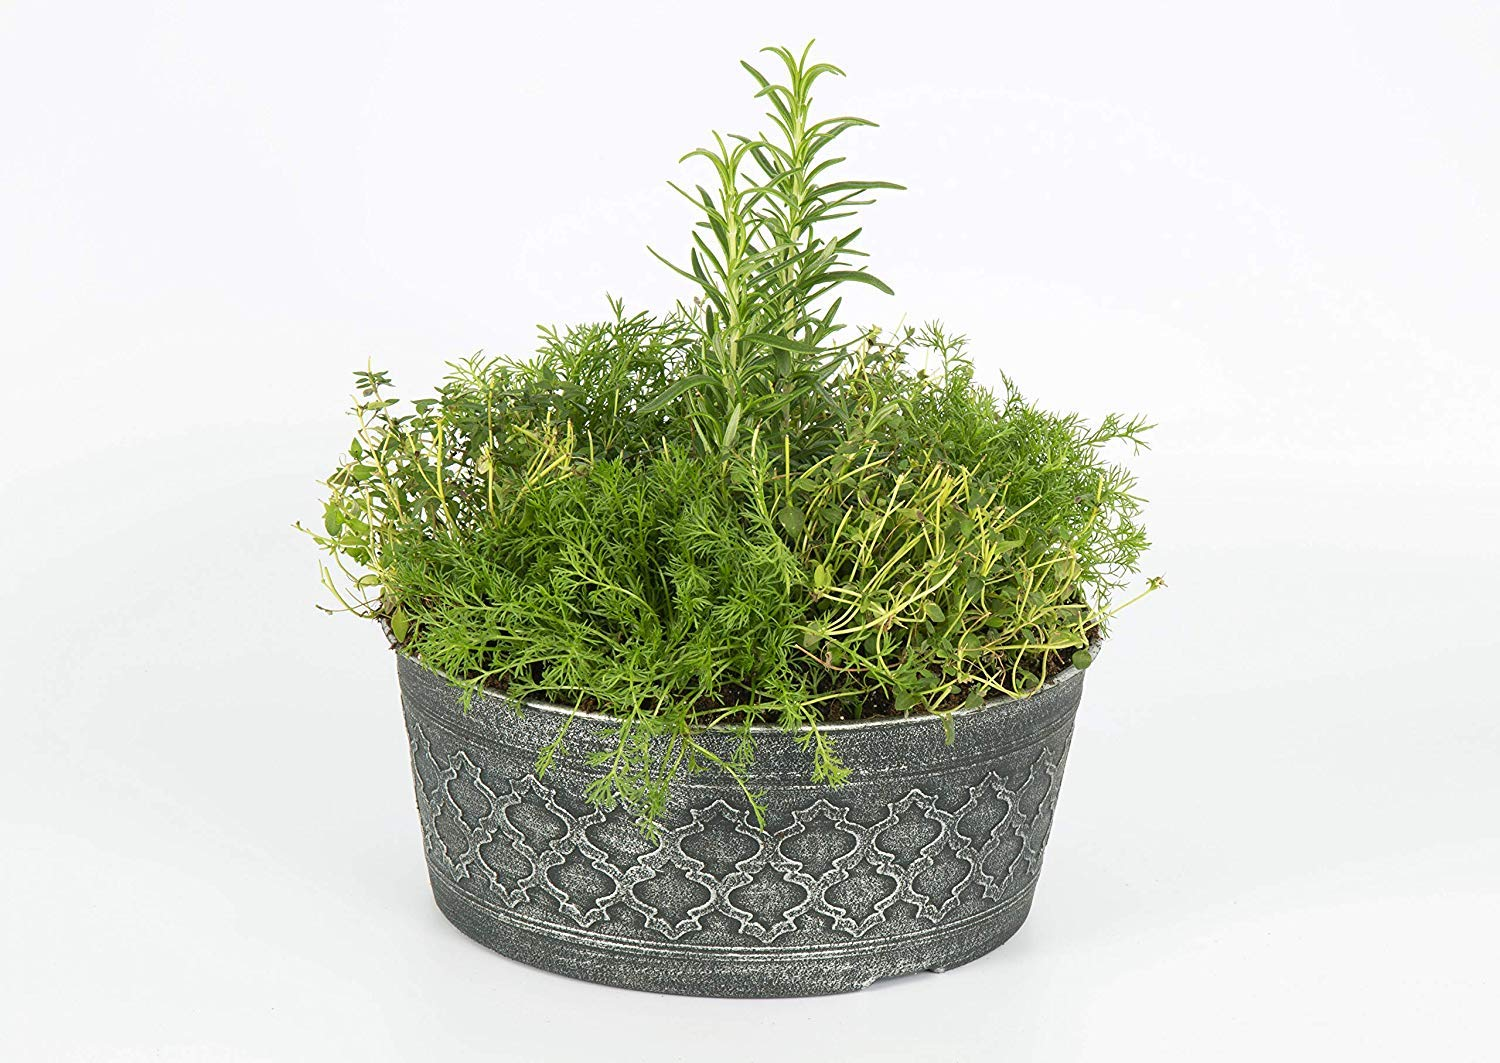 The Three Company Stress Relieving Live Aromatic 4'' Herb Combo (Lemon Balm, Rosemary, Chamomile) 1 Pint Pot Aids in Relaxation (Fоur Расk) by The Three Company (Image #6)